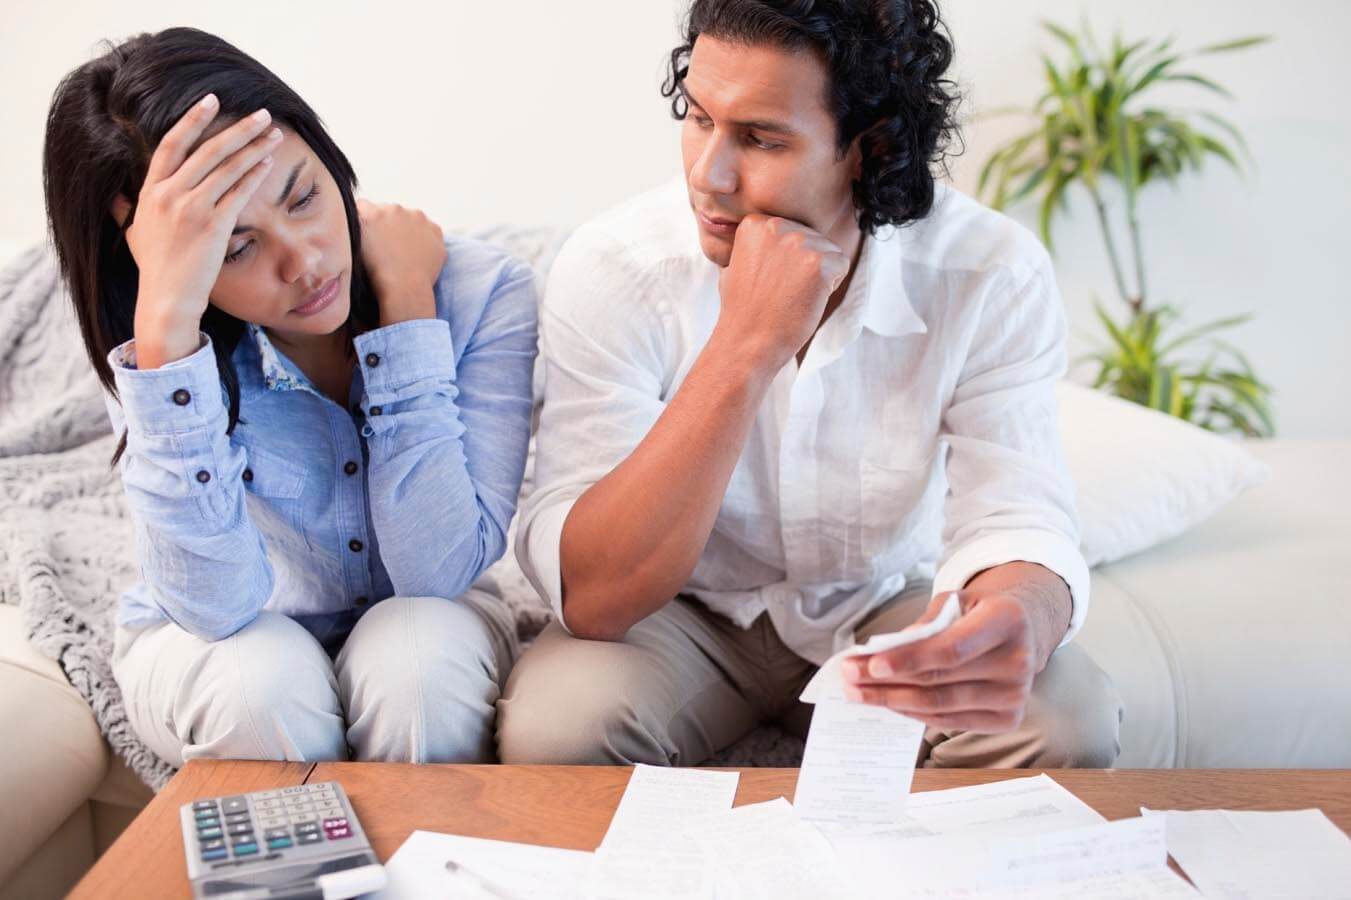 Are you feeling overwhelmed by financial trouble?